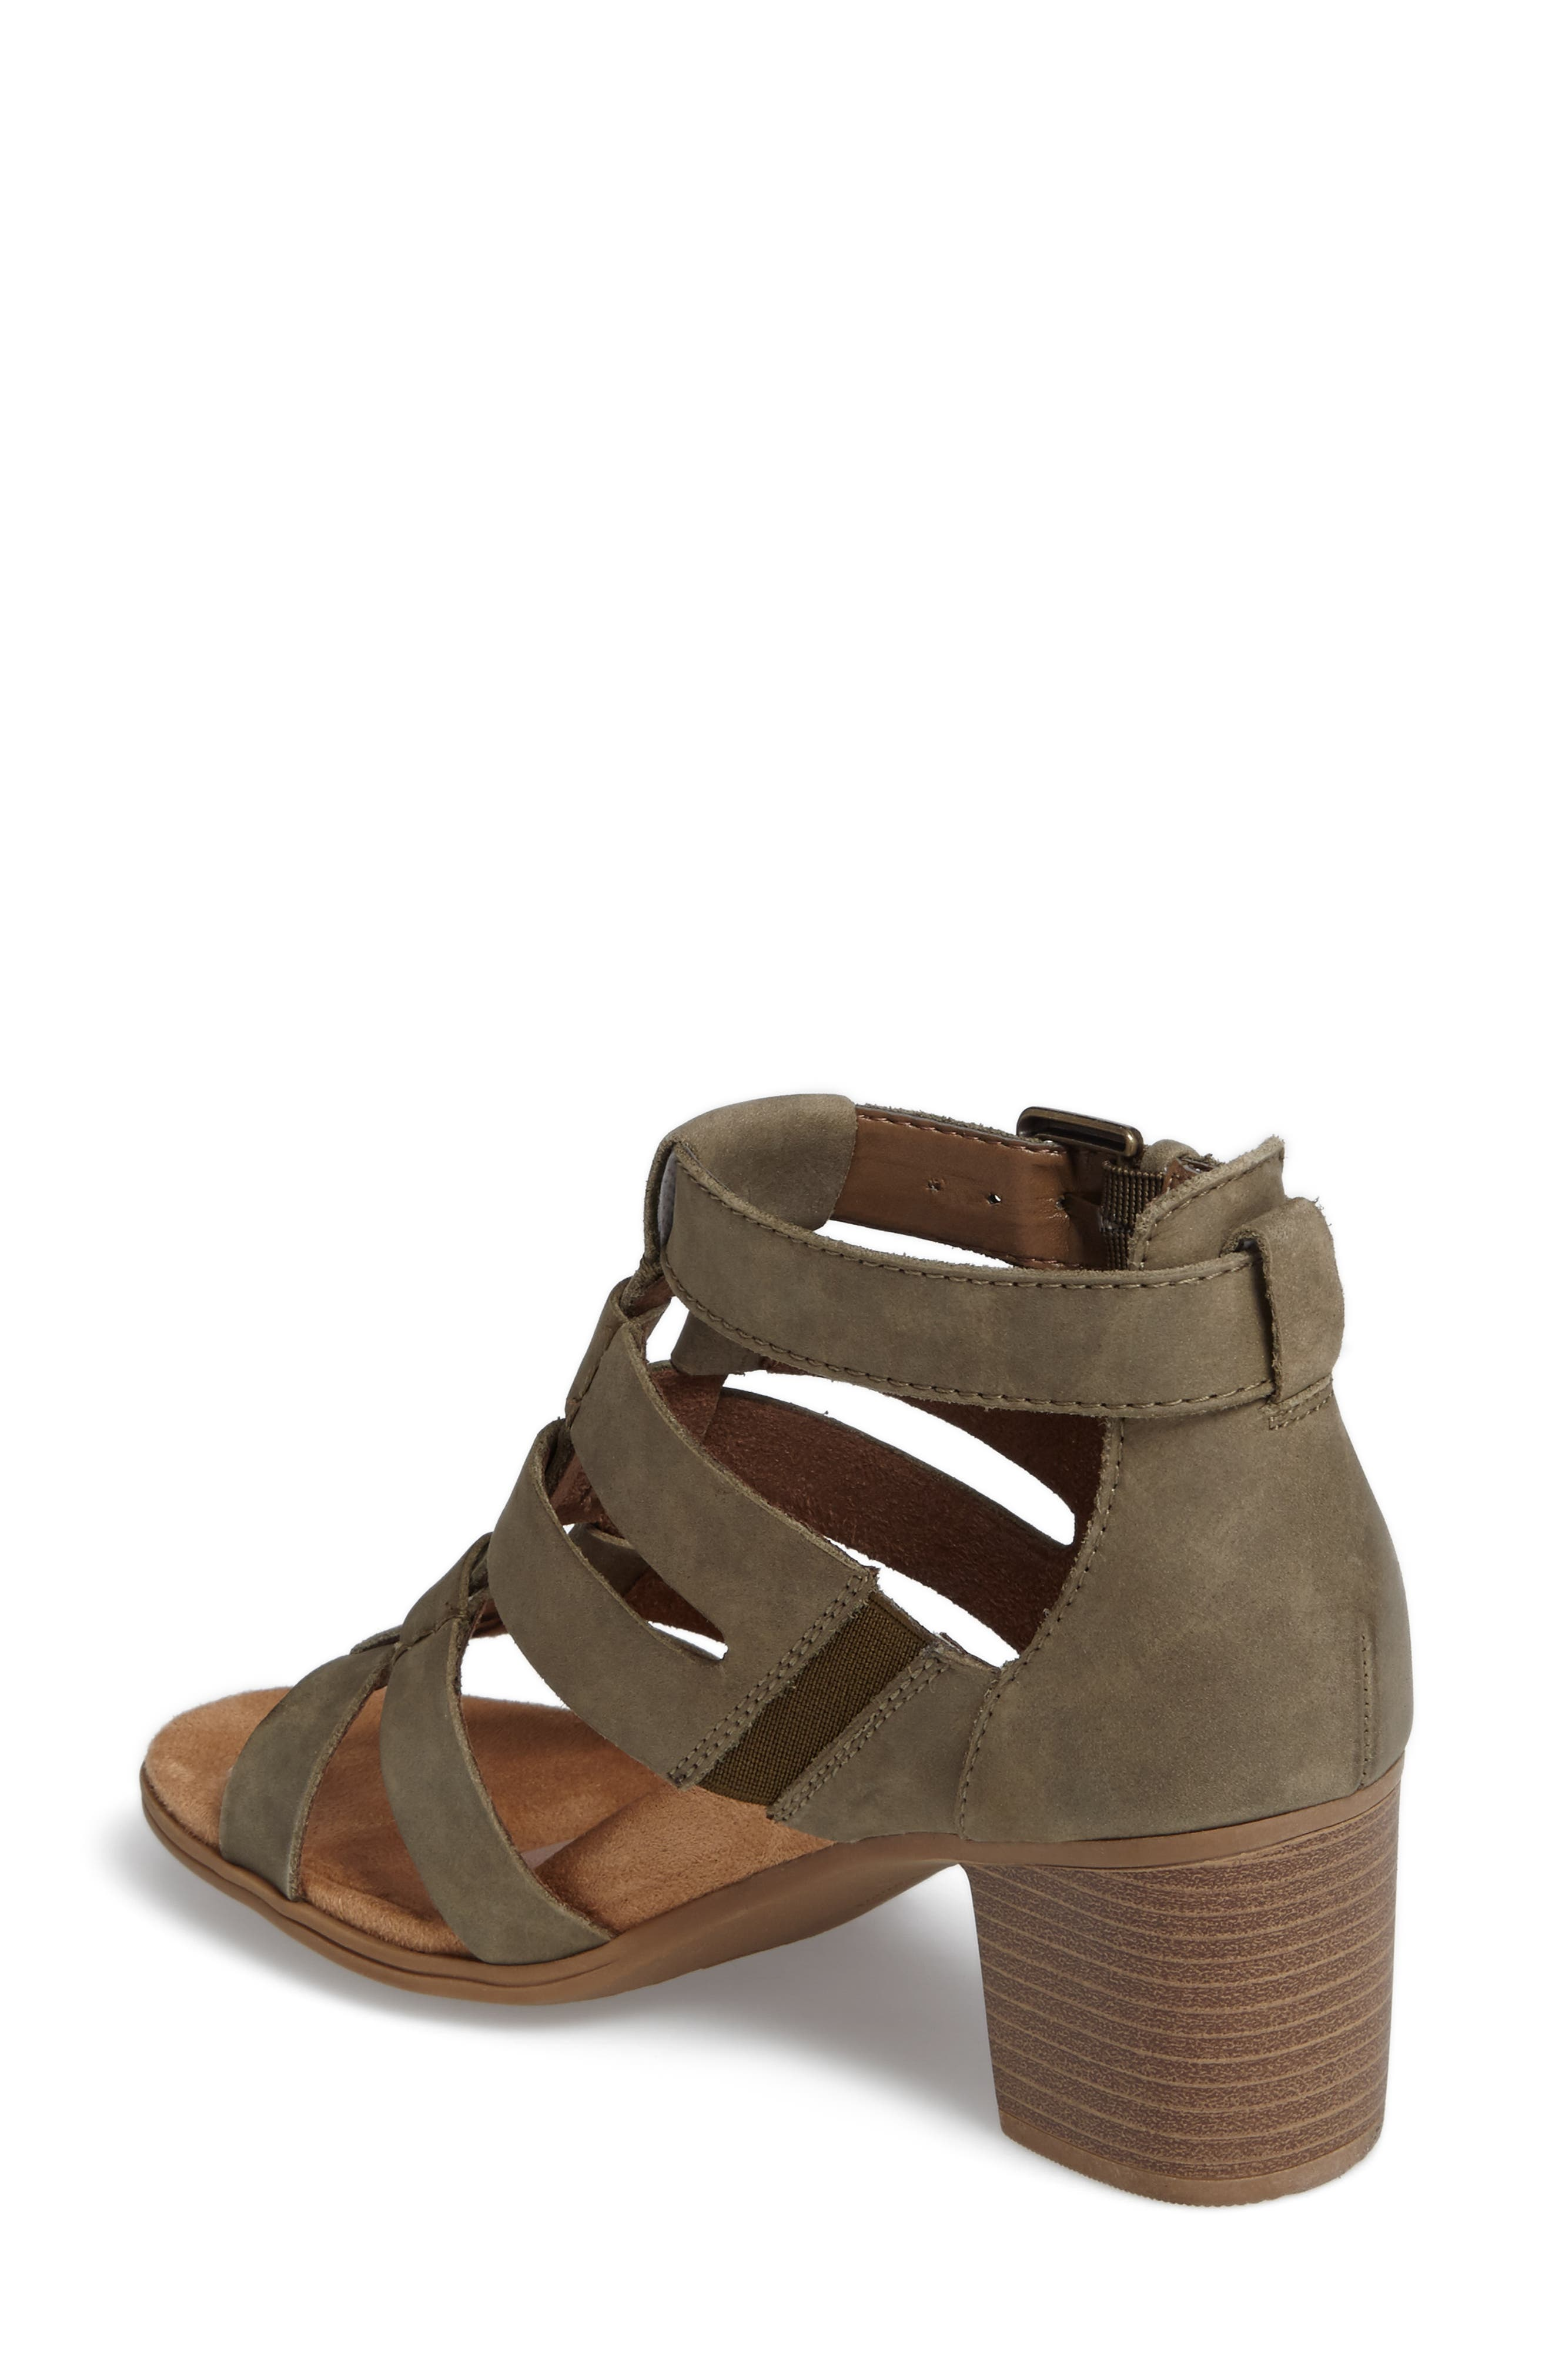 Alternate Image 2  - Rockport Cobb Hill Hattie Block Heel Gladiator Sandal (Women)